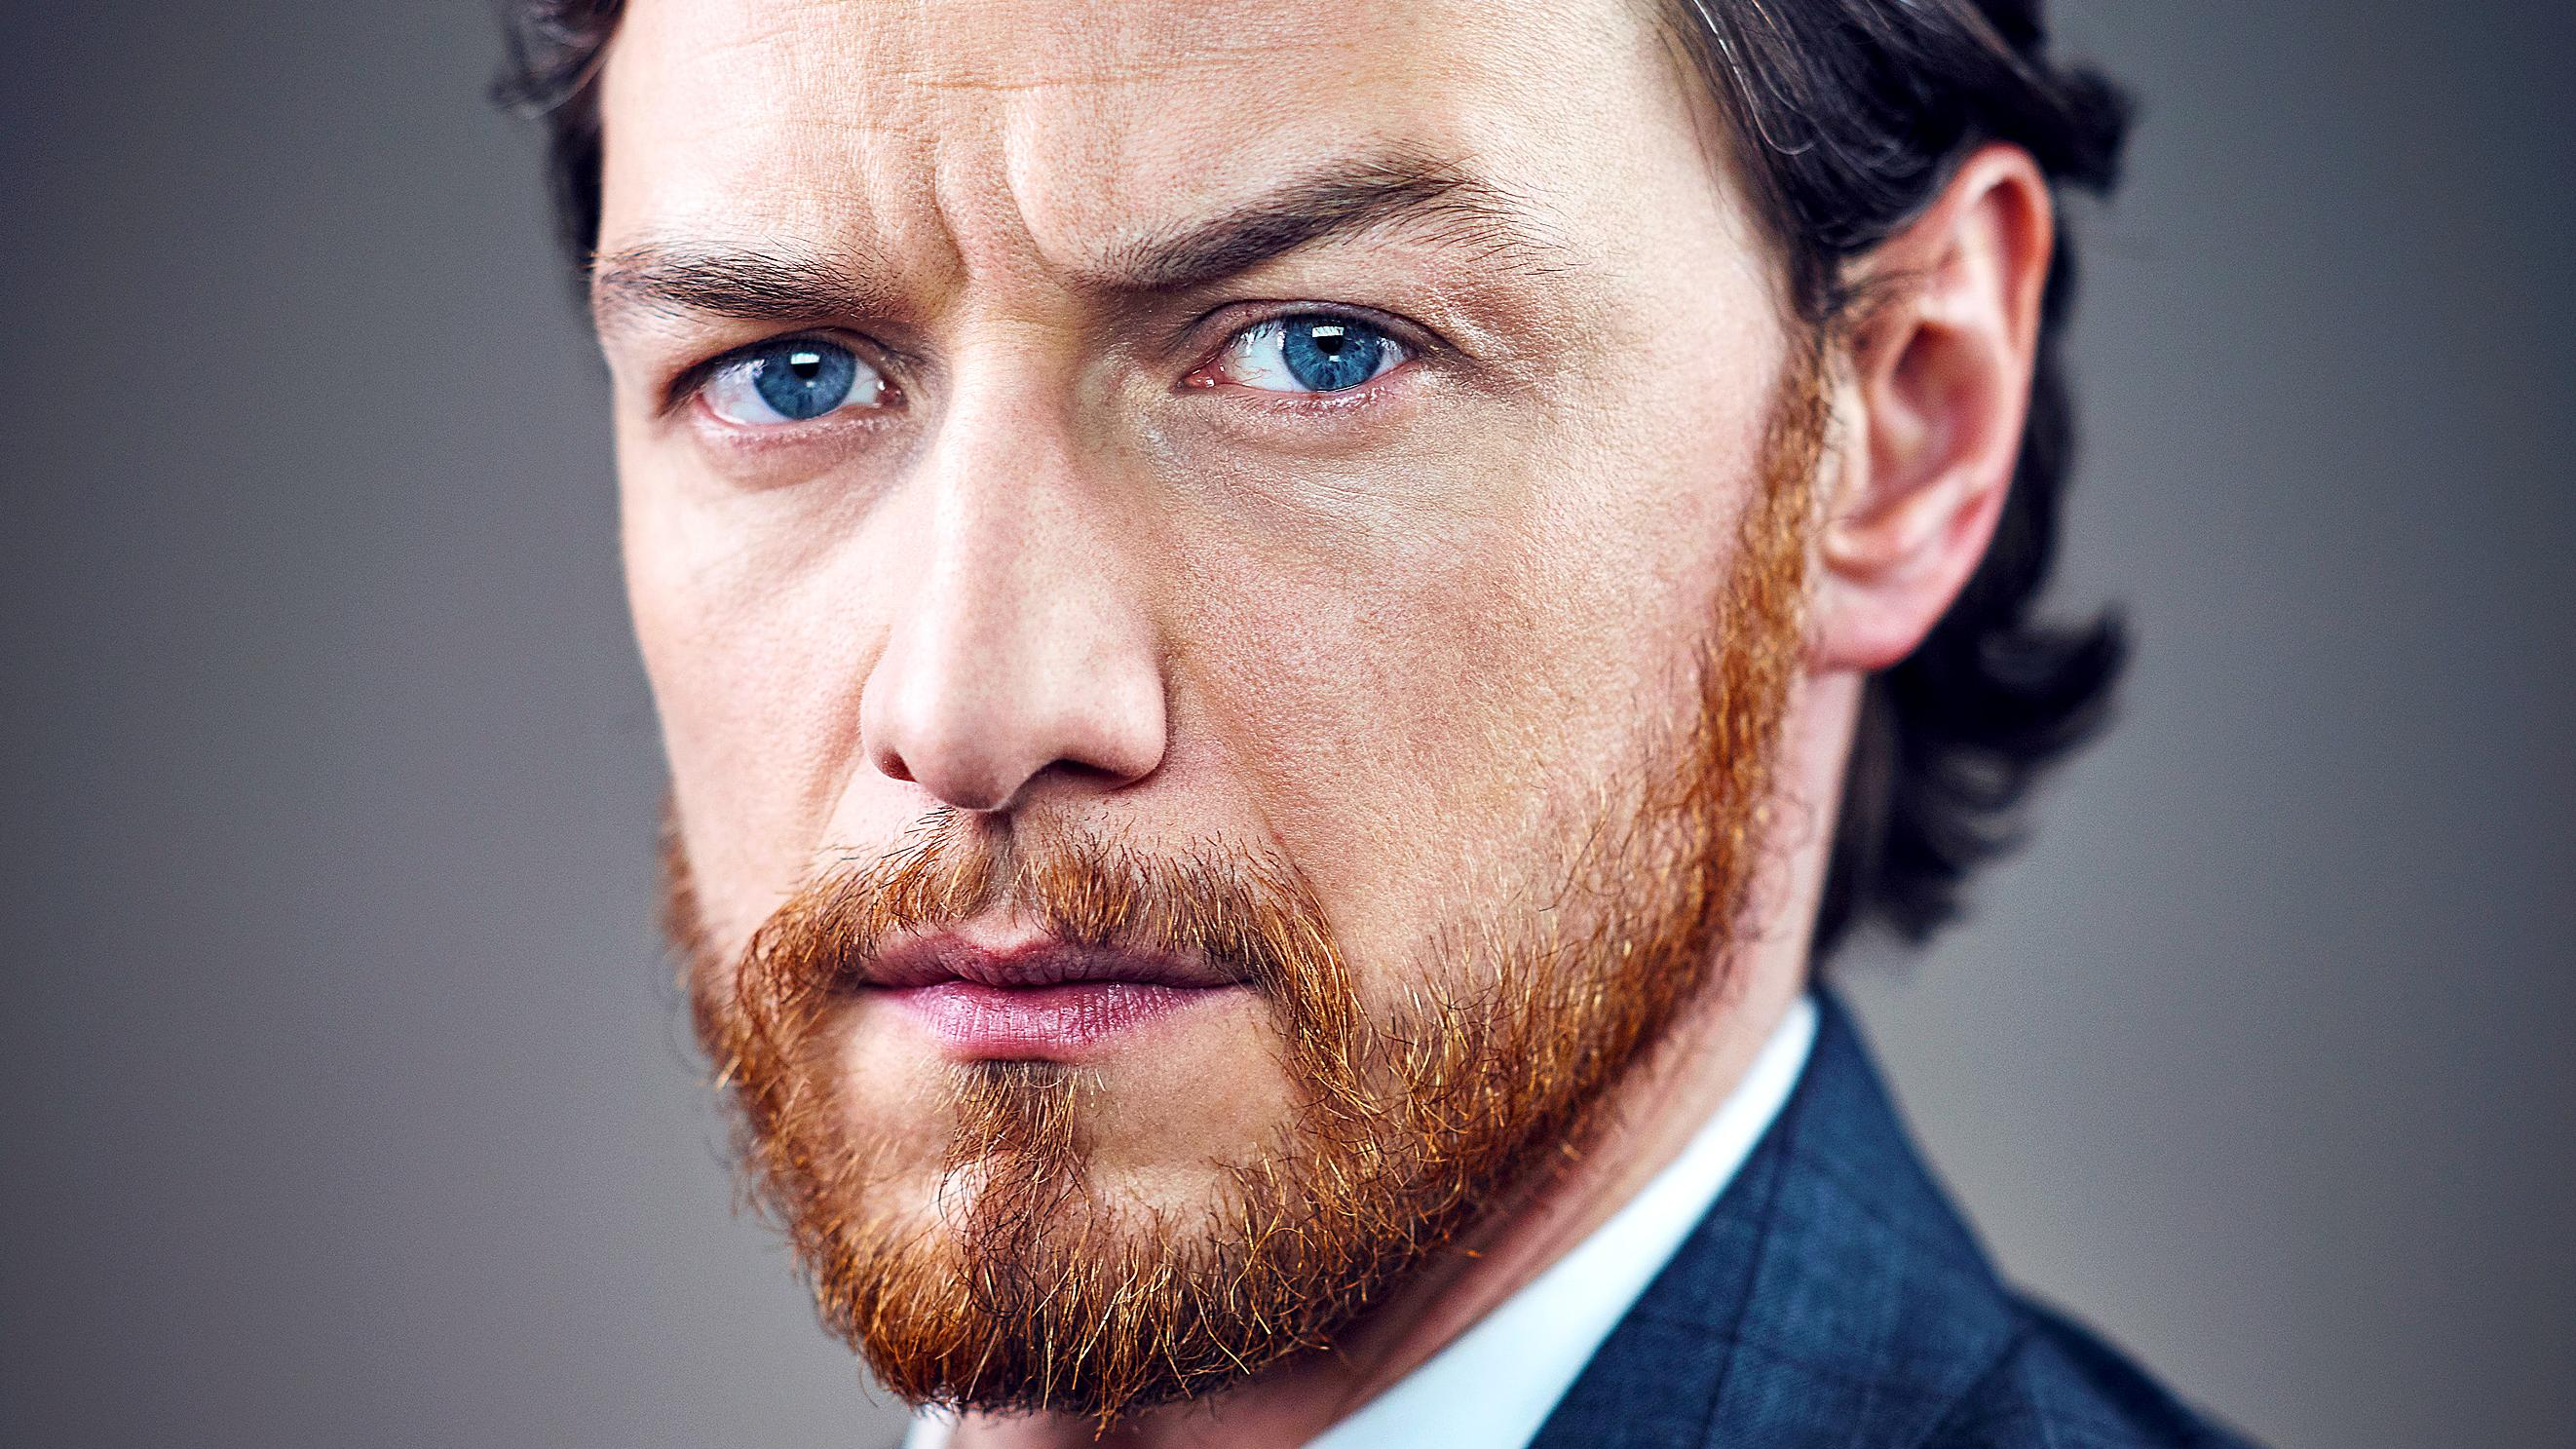 James McAvoy Ethnicity, Race, and Nationality